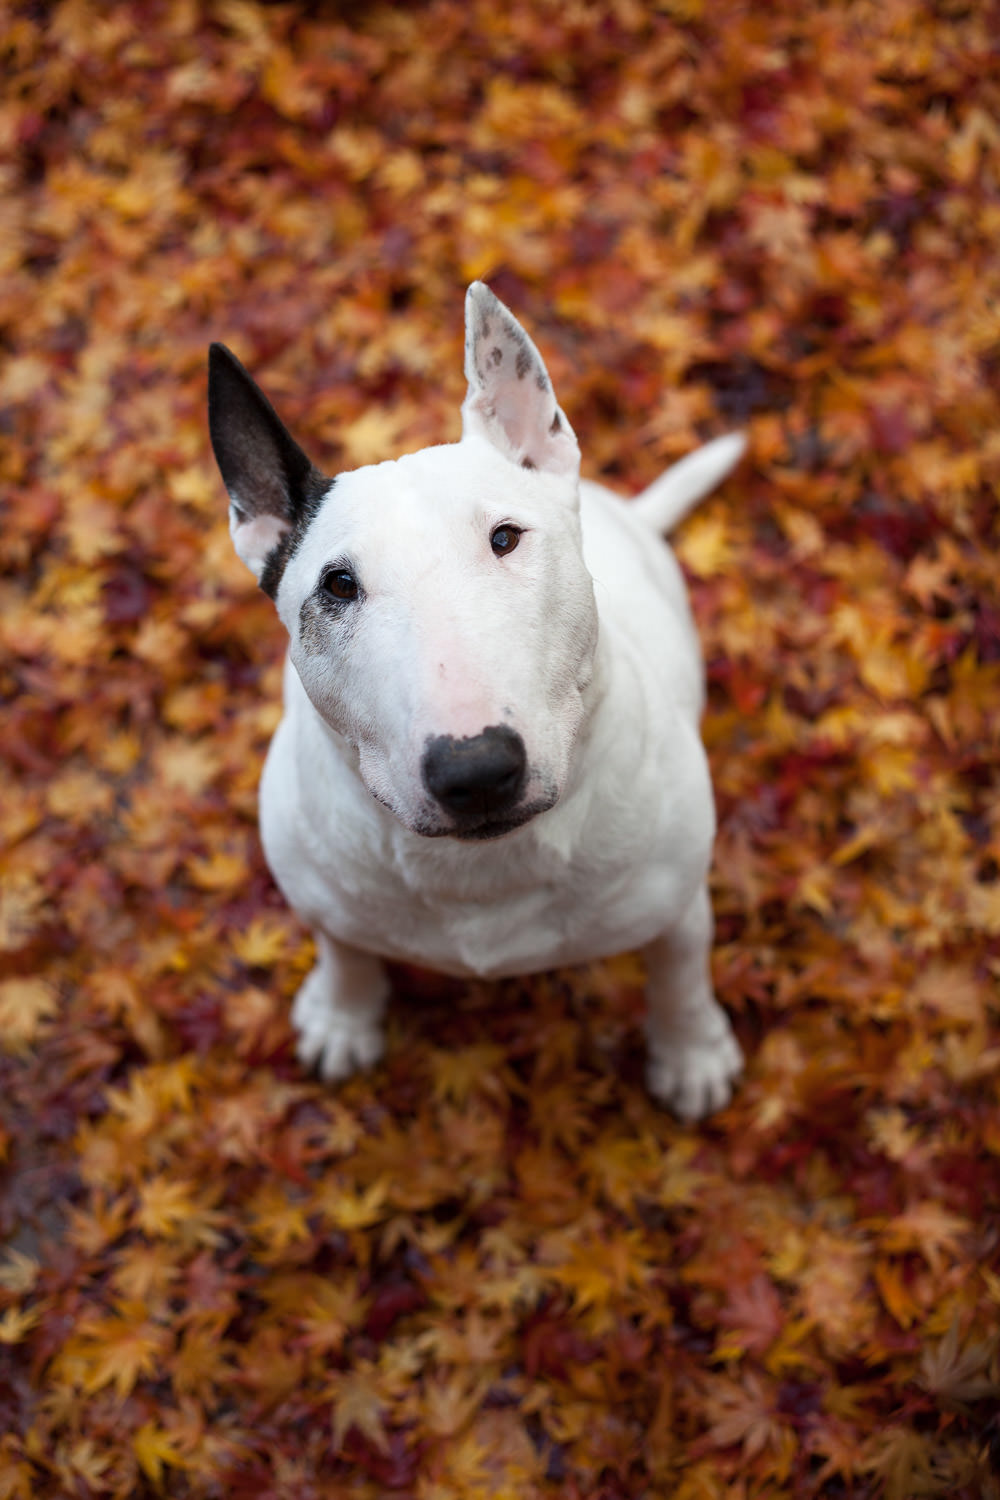 Englsih bull terrier dog looking up at camera